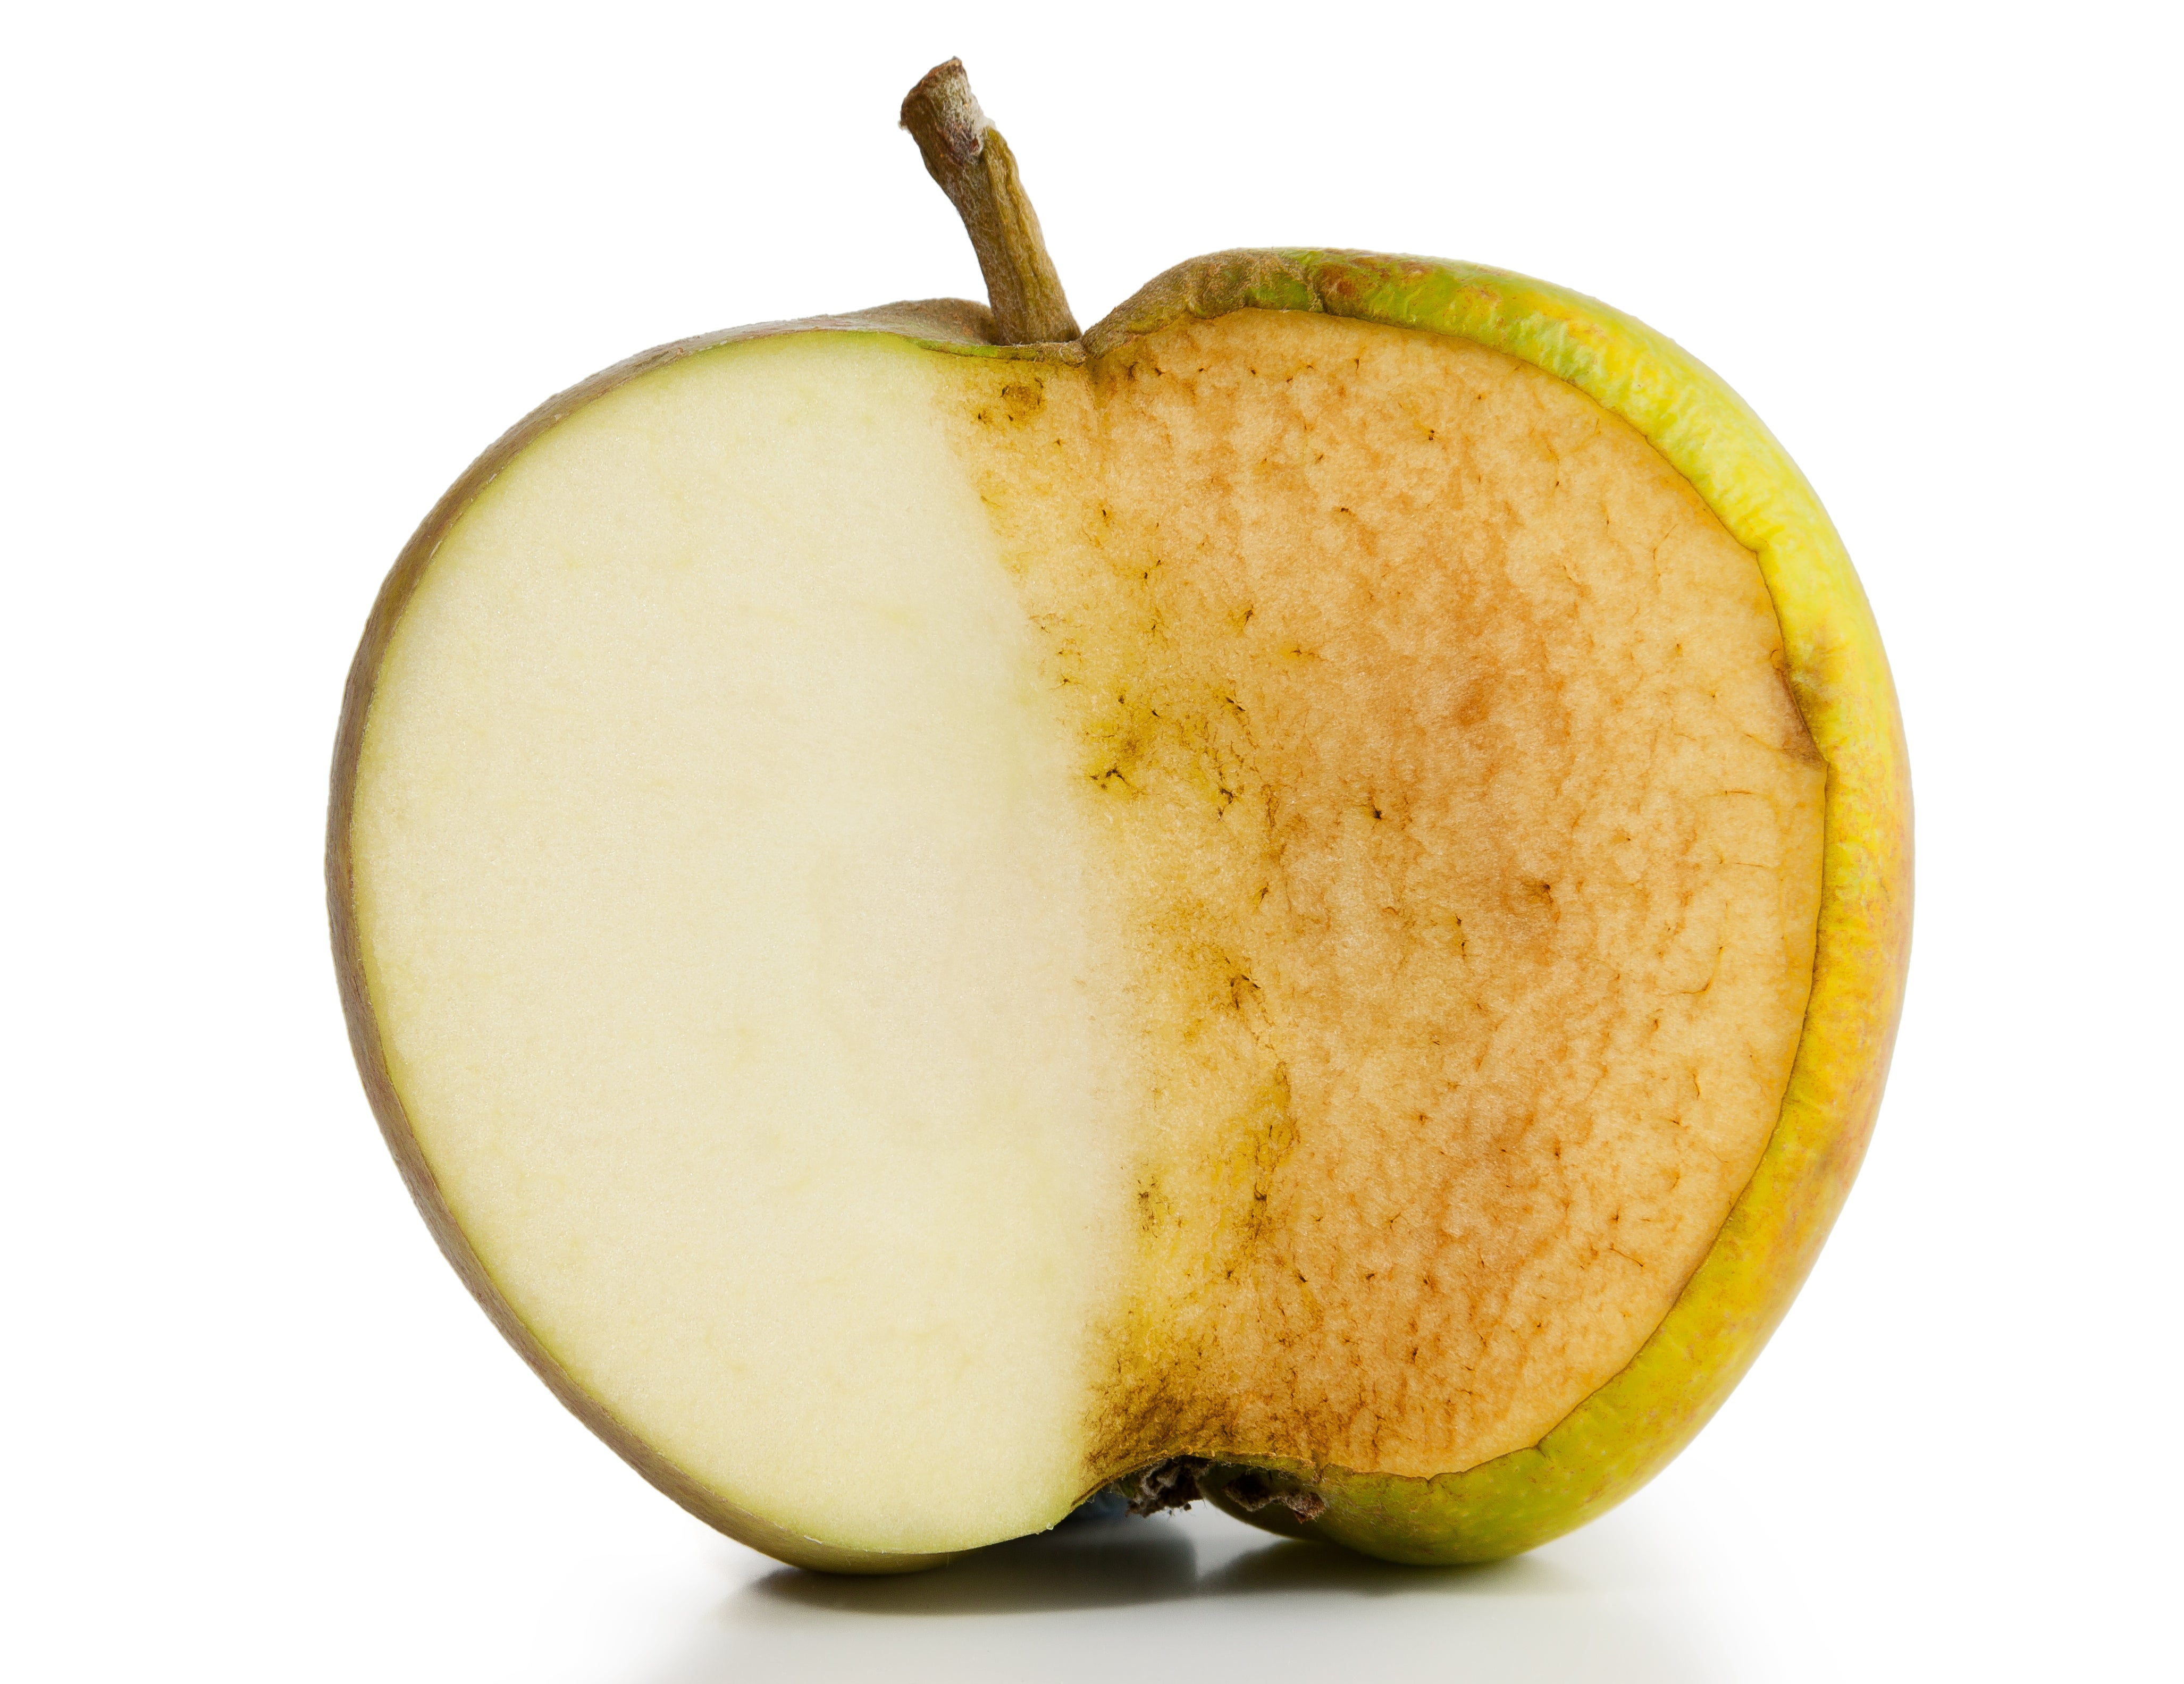 Why do apple slices turn brown after being cut? - Scientific American